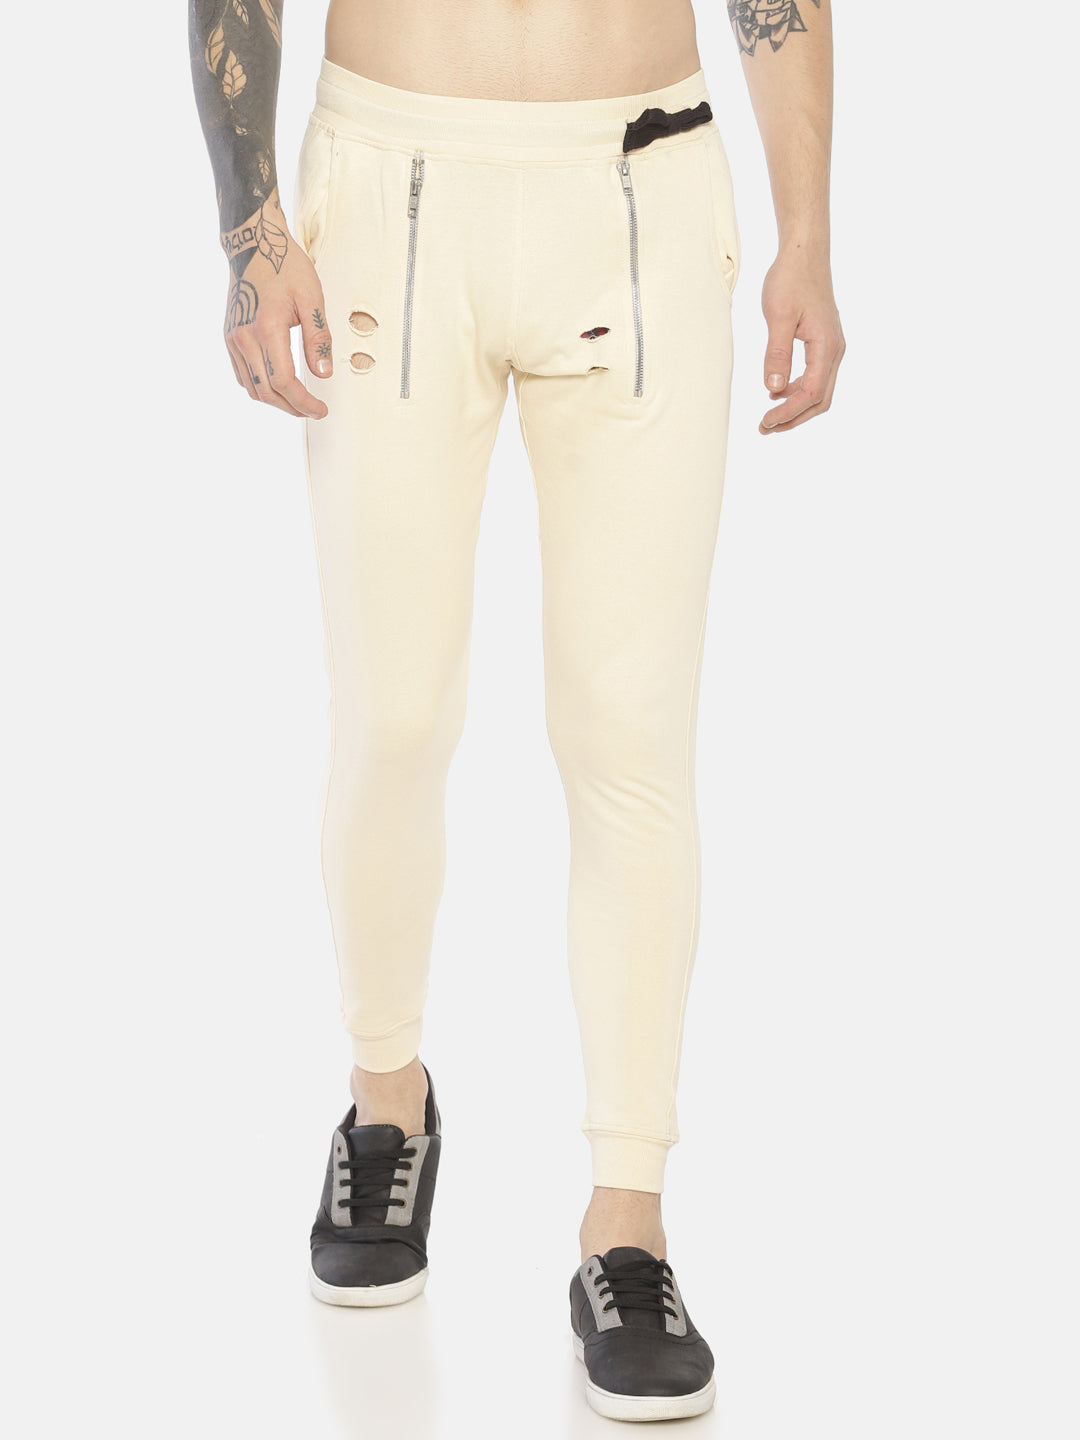 Slim Fit With Cross Zipper Joggers